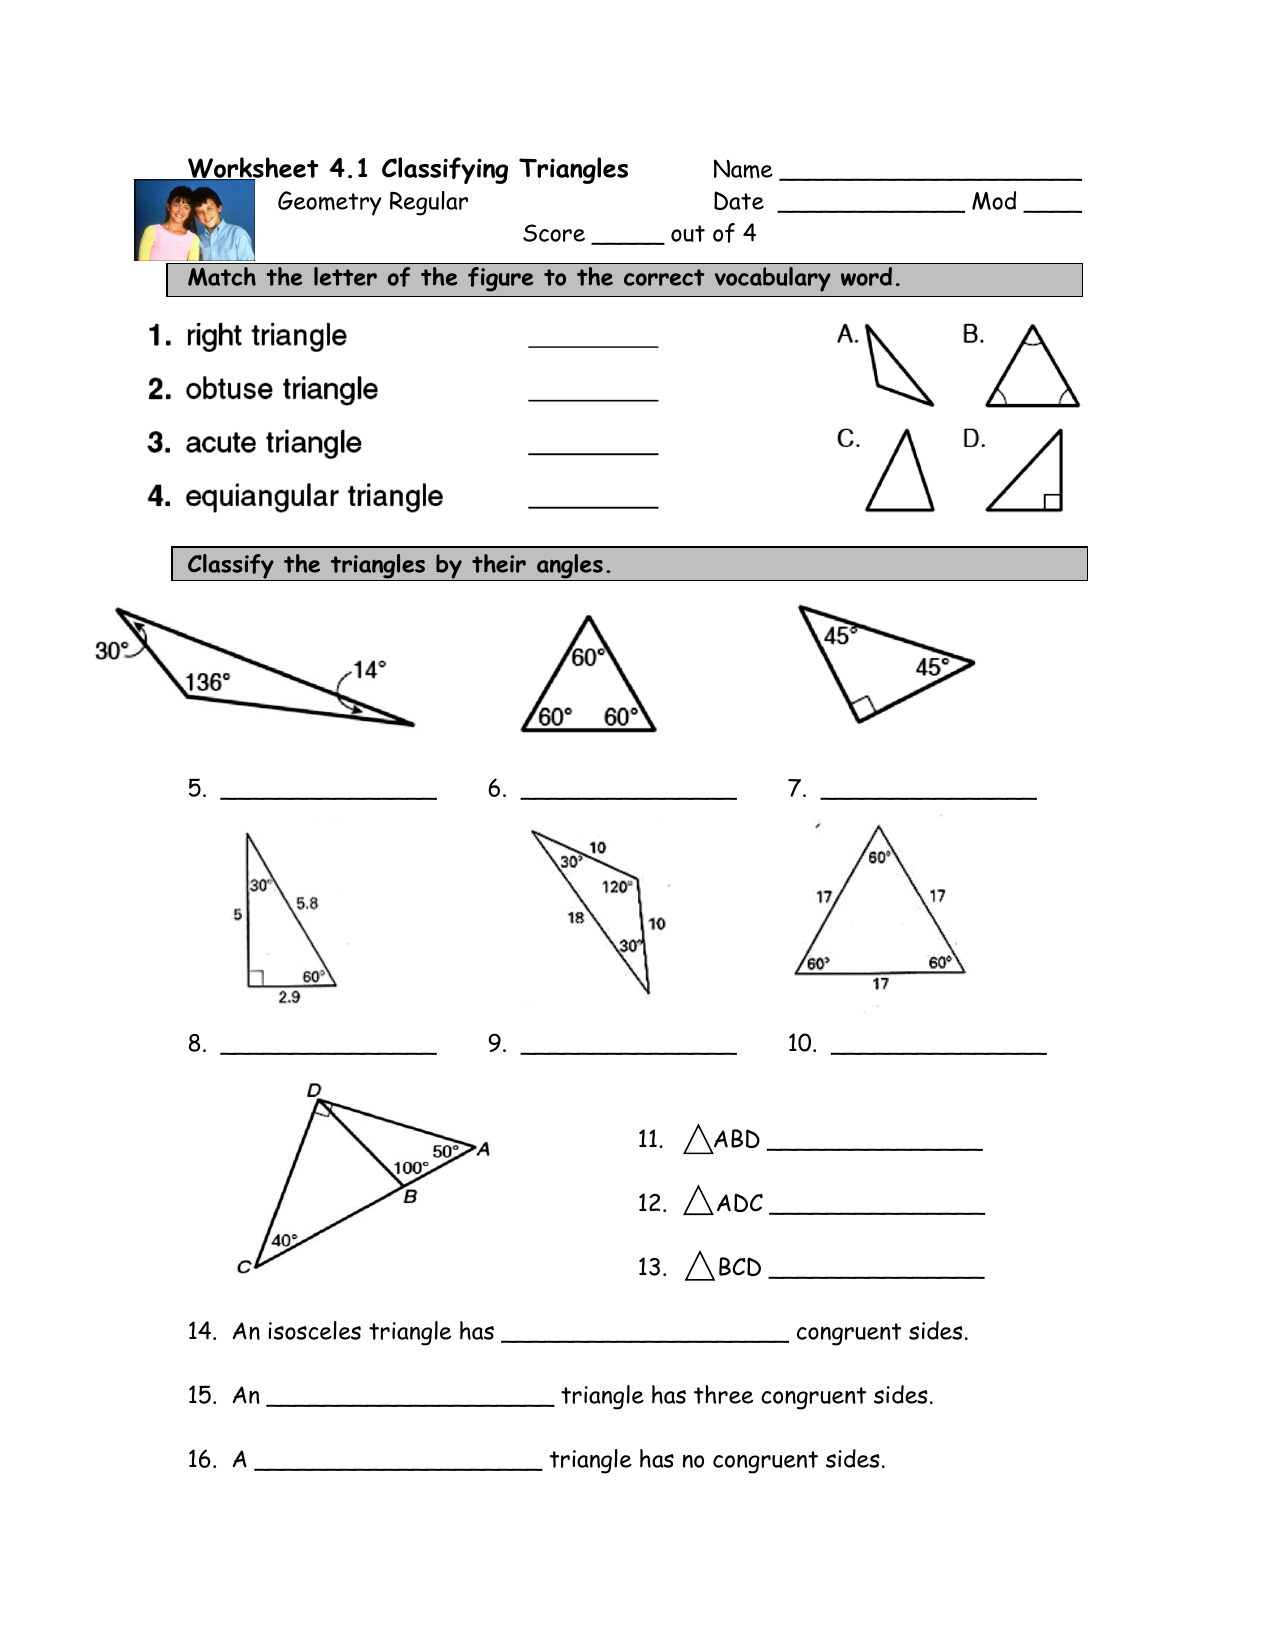 Worksheet 41 Classifying Triangles Or Classifying Triangles Worksheet With Answer Key